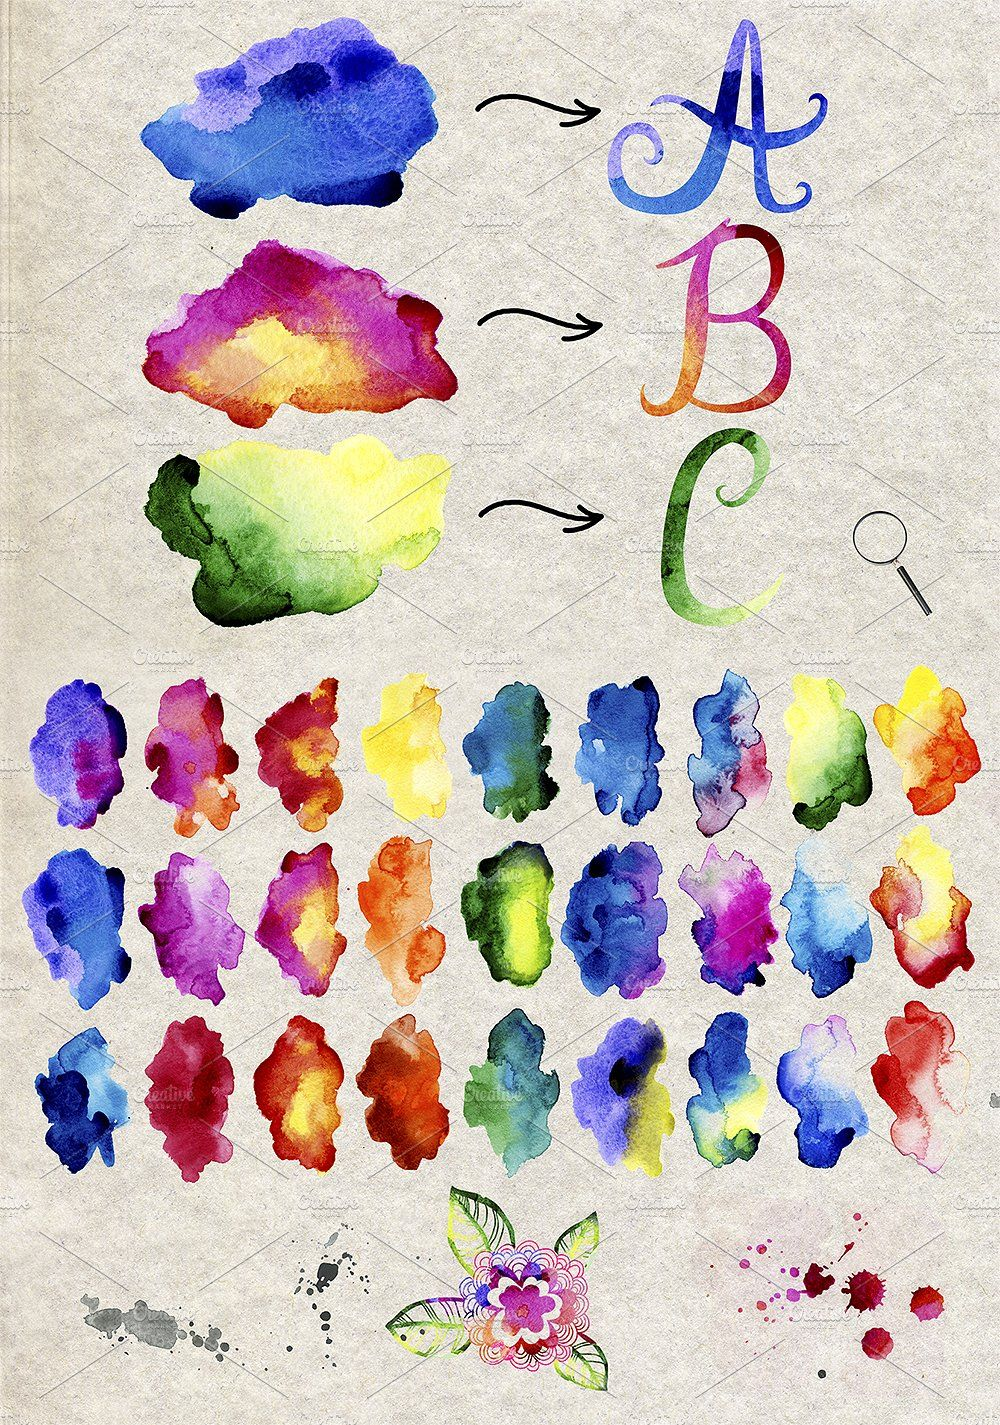 Watercolour Font And Blots Watercolor Font Watercolor